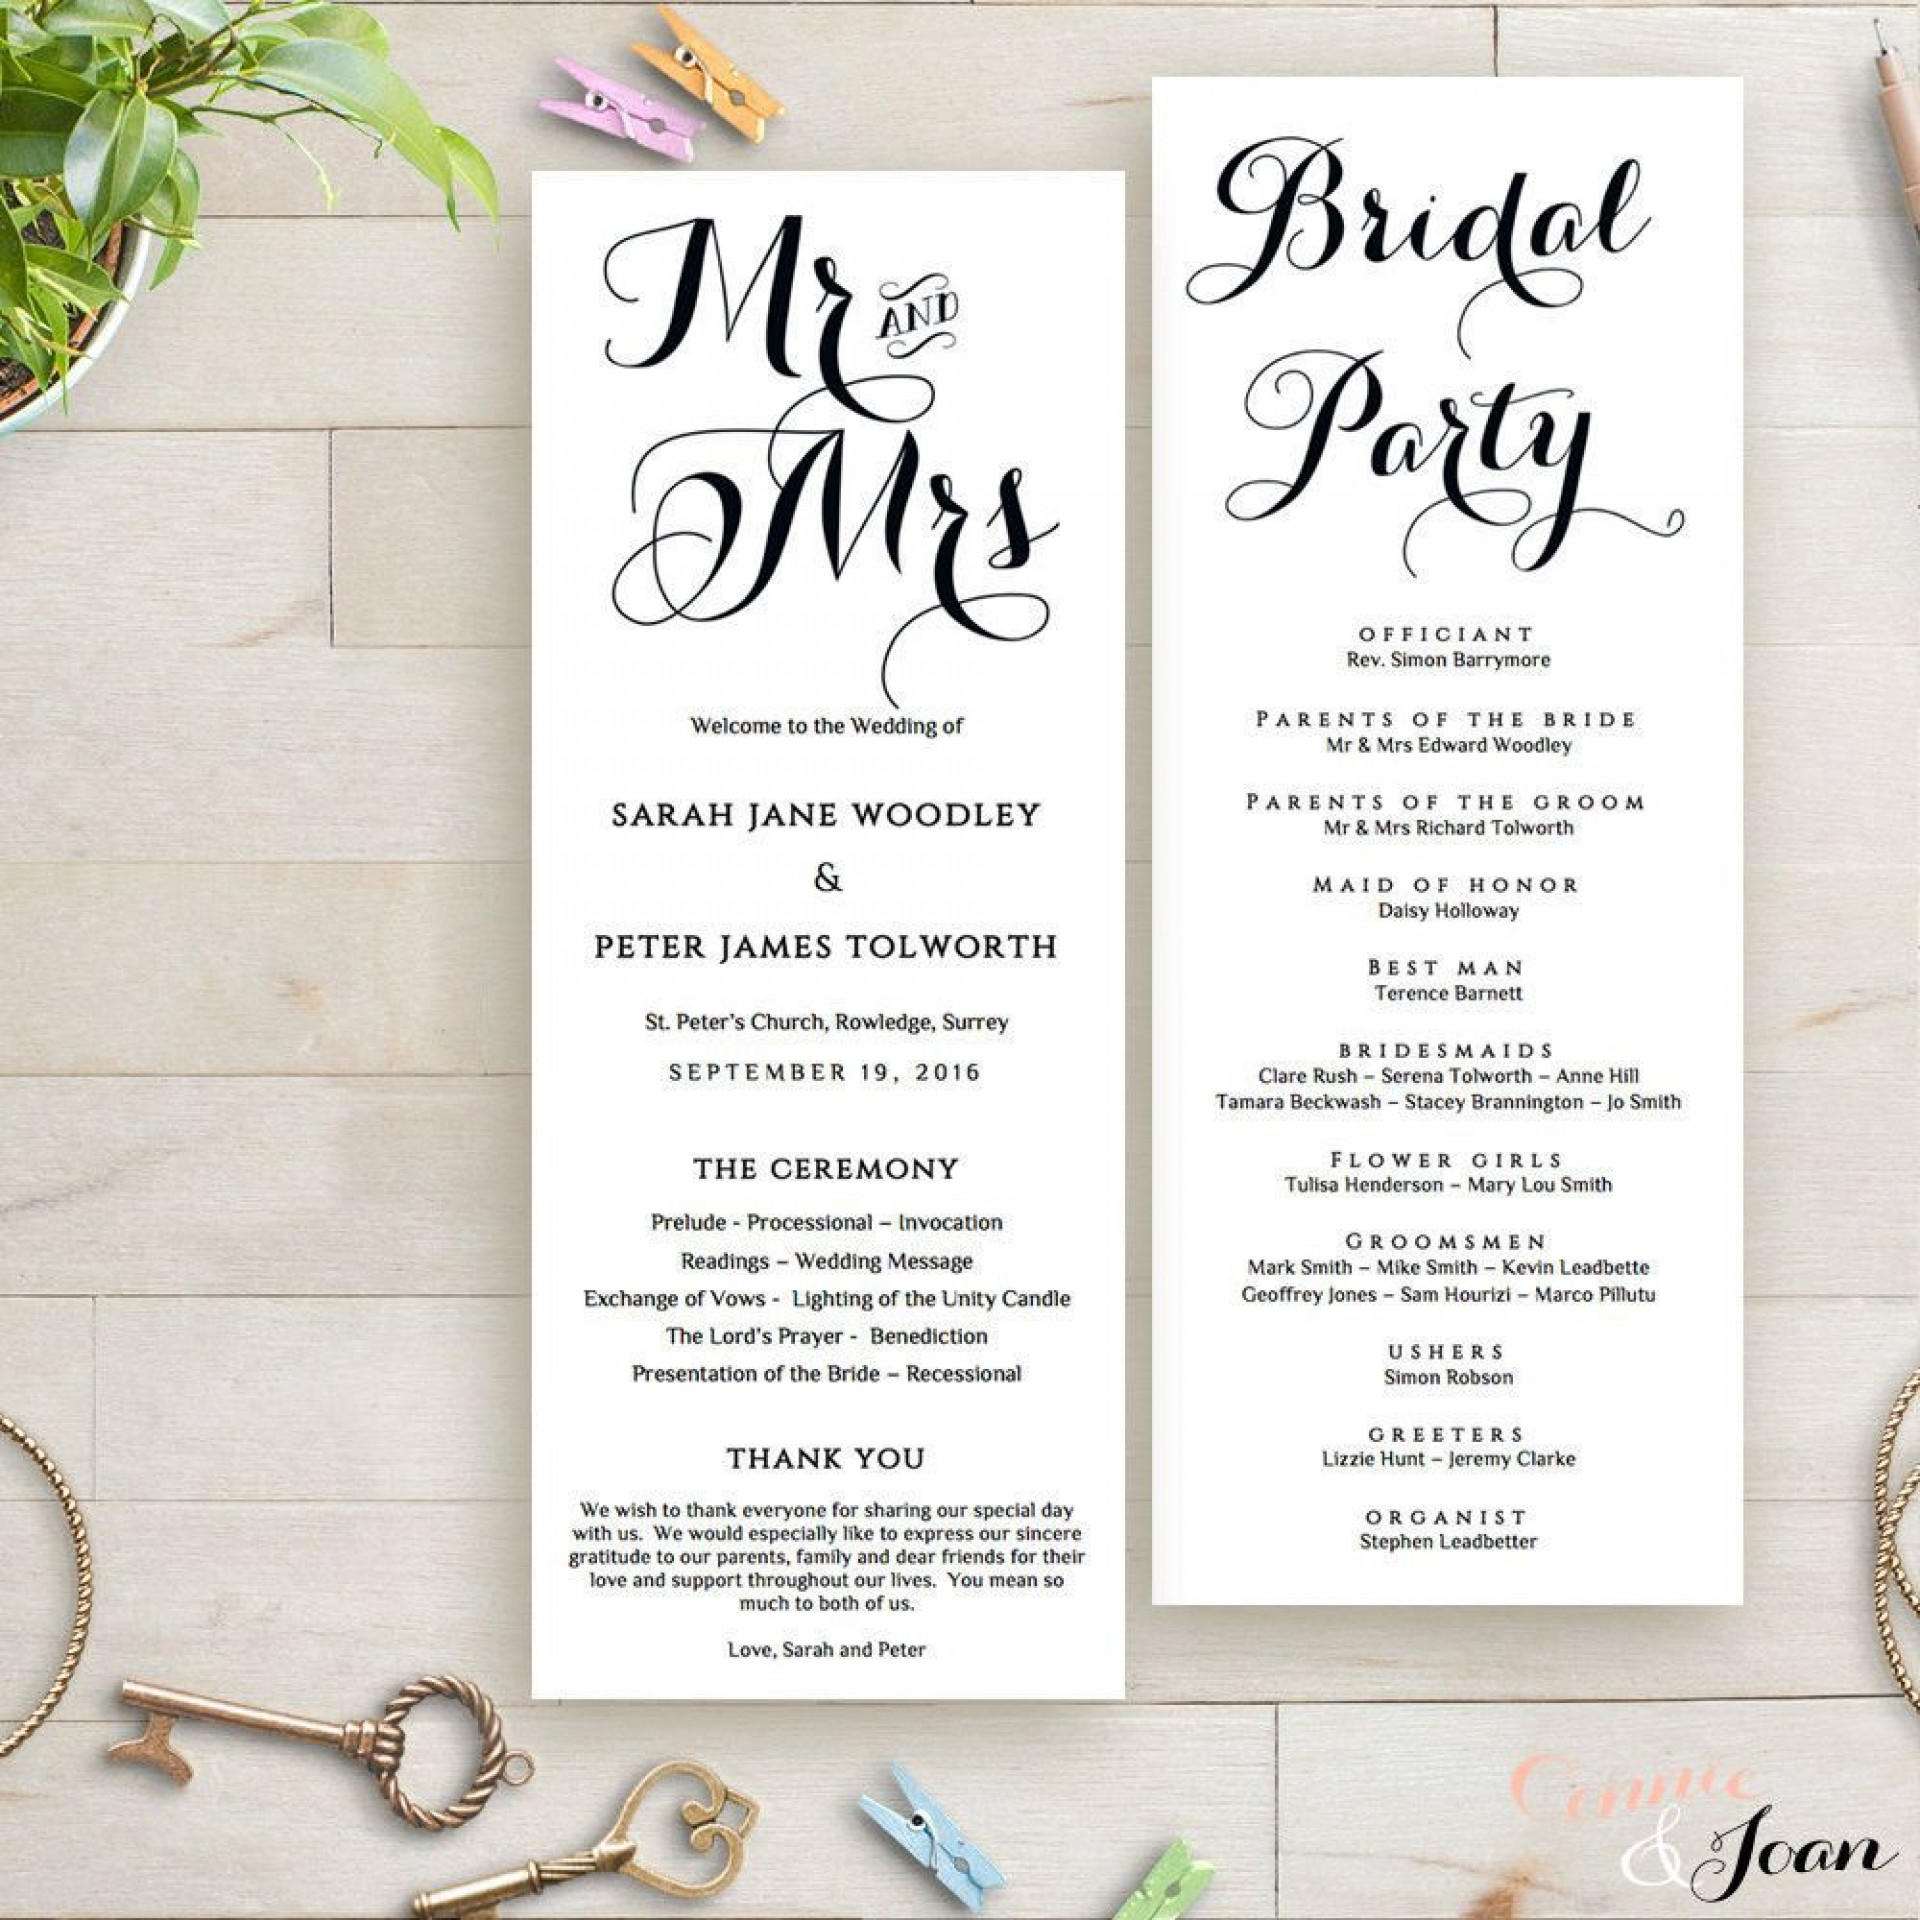 002 Awesome Wedding Order Of Service Template Image  Church Free Microsoft Word Download1920